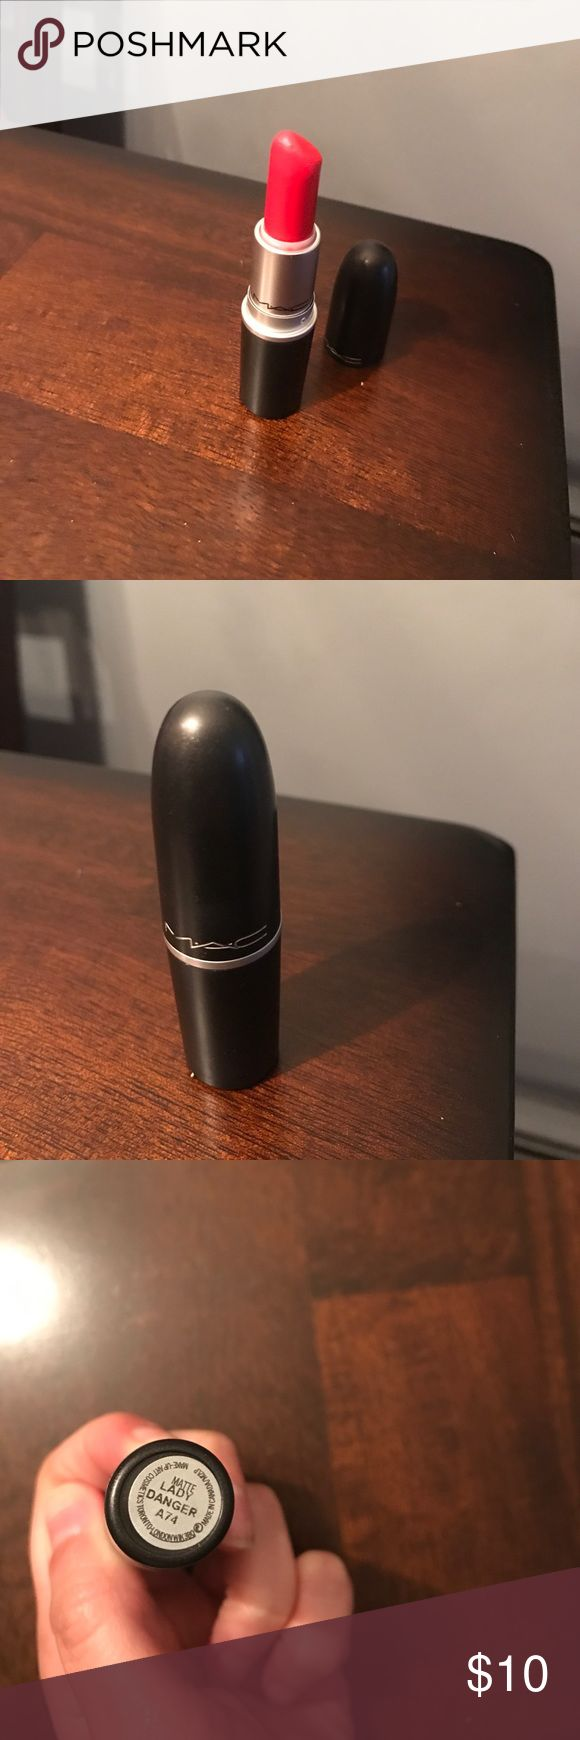 Mac lady danger lipstick Mac lipstick maybe used twice! lady danger color. Almost like new! MAC Cosmetics Makeup Lipstick